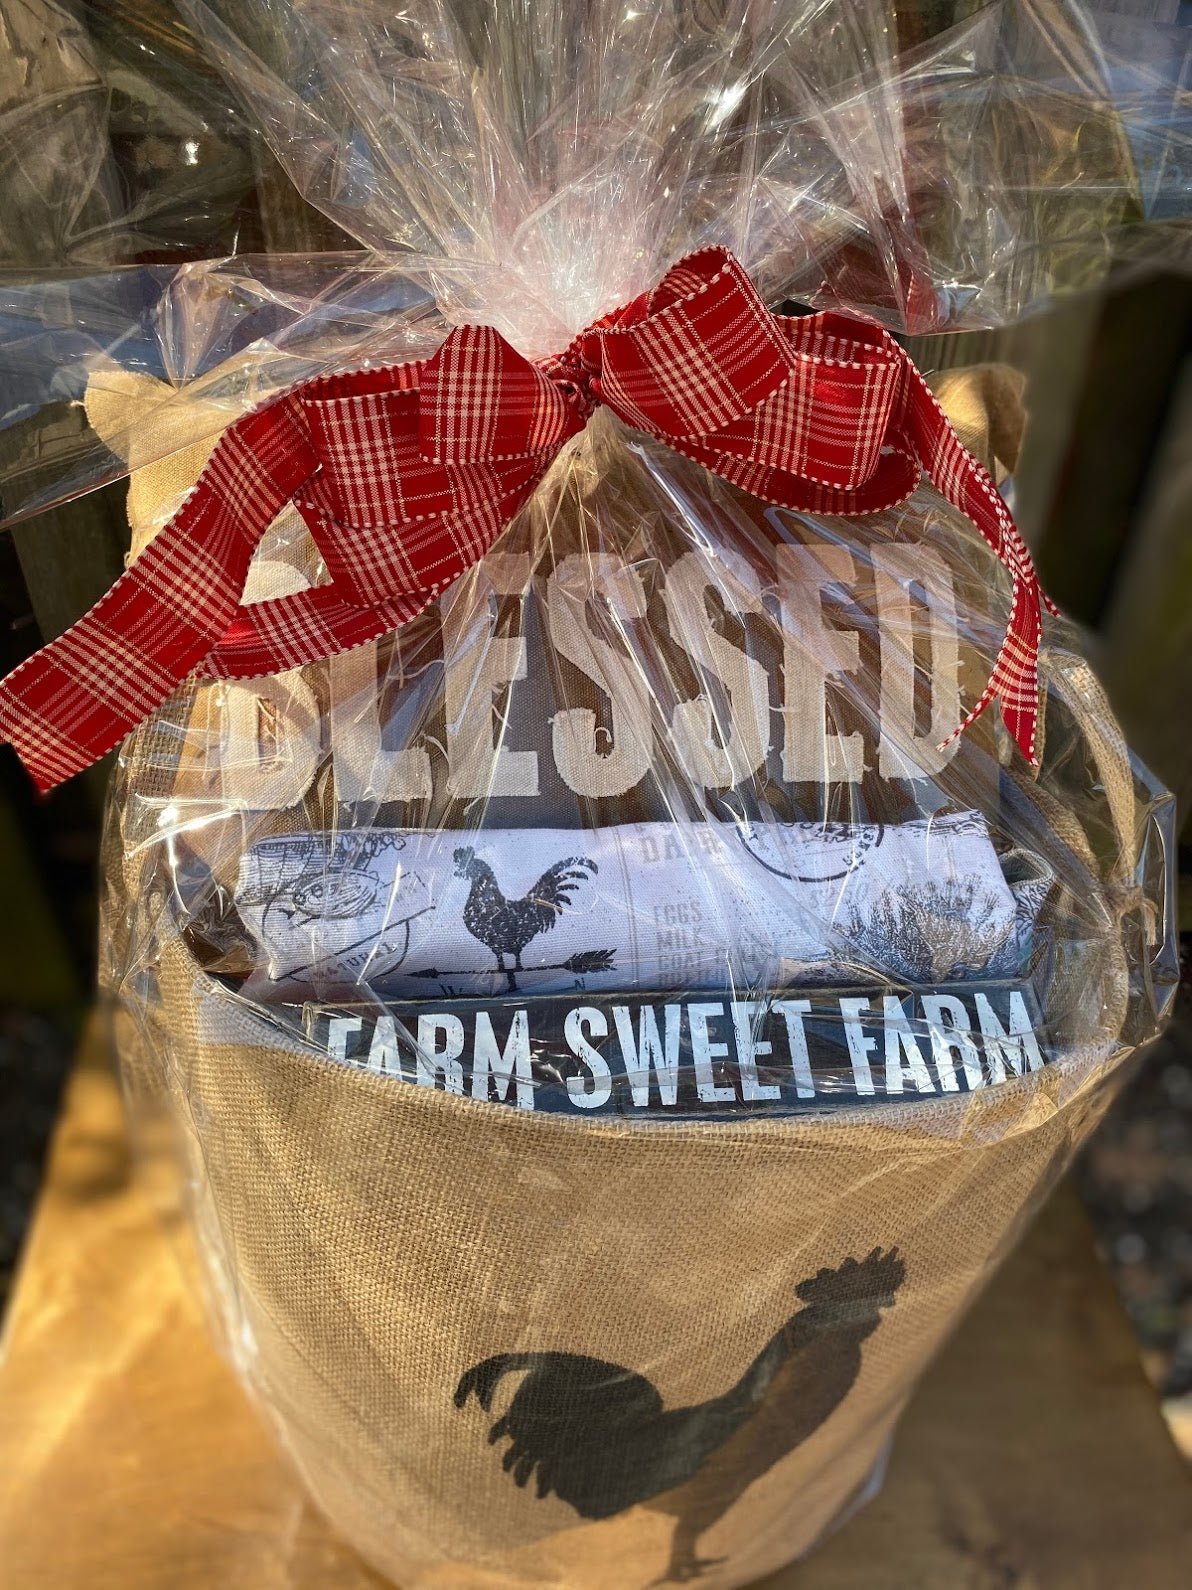 Farm Sweet Farm Gift Basket  (Ships in 2 Days)